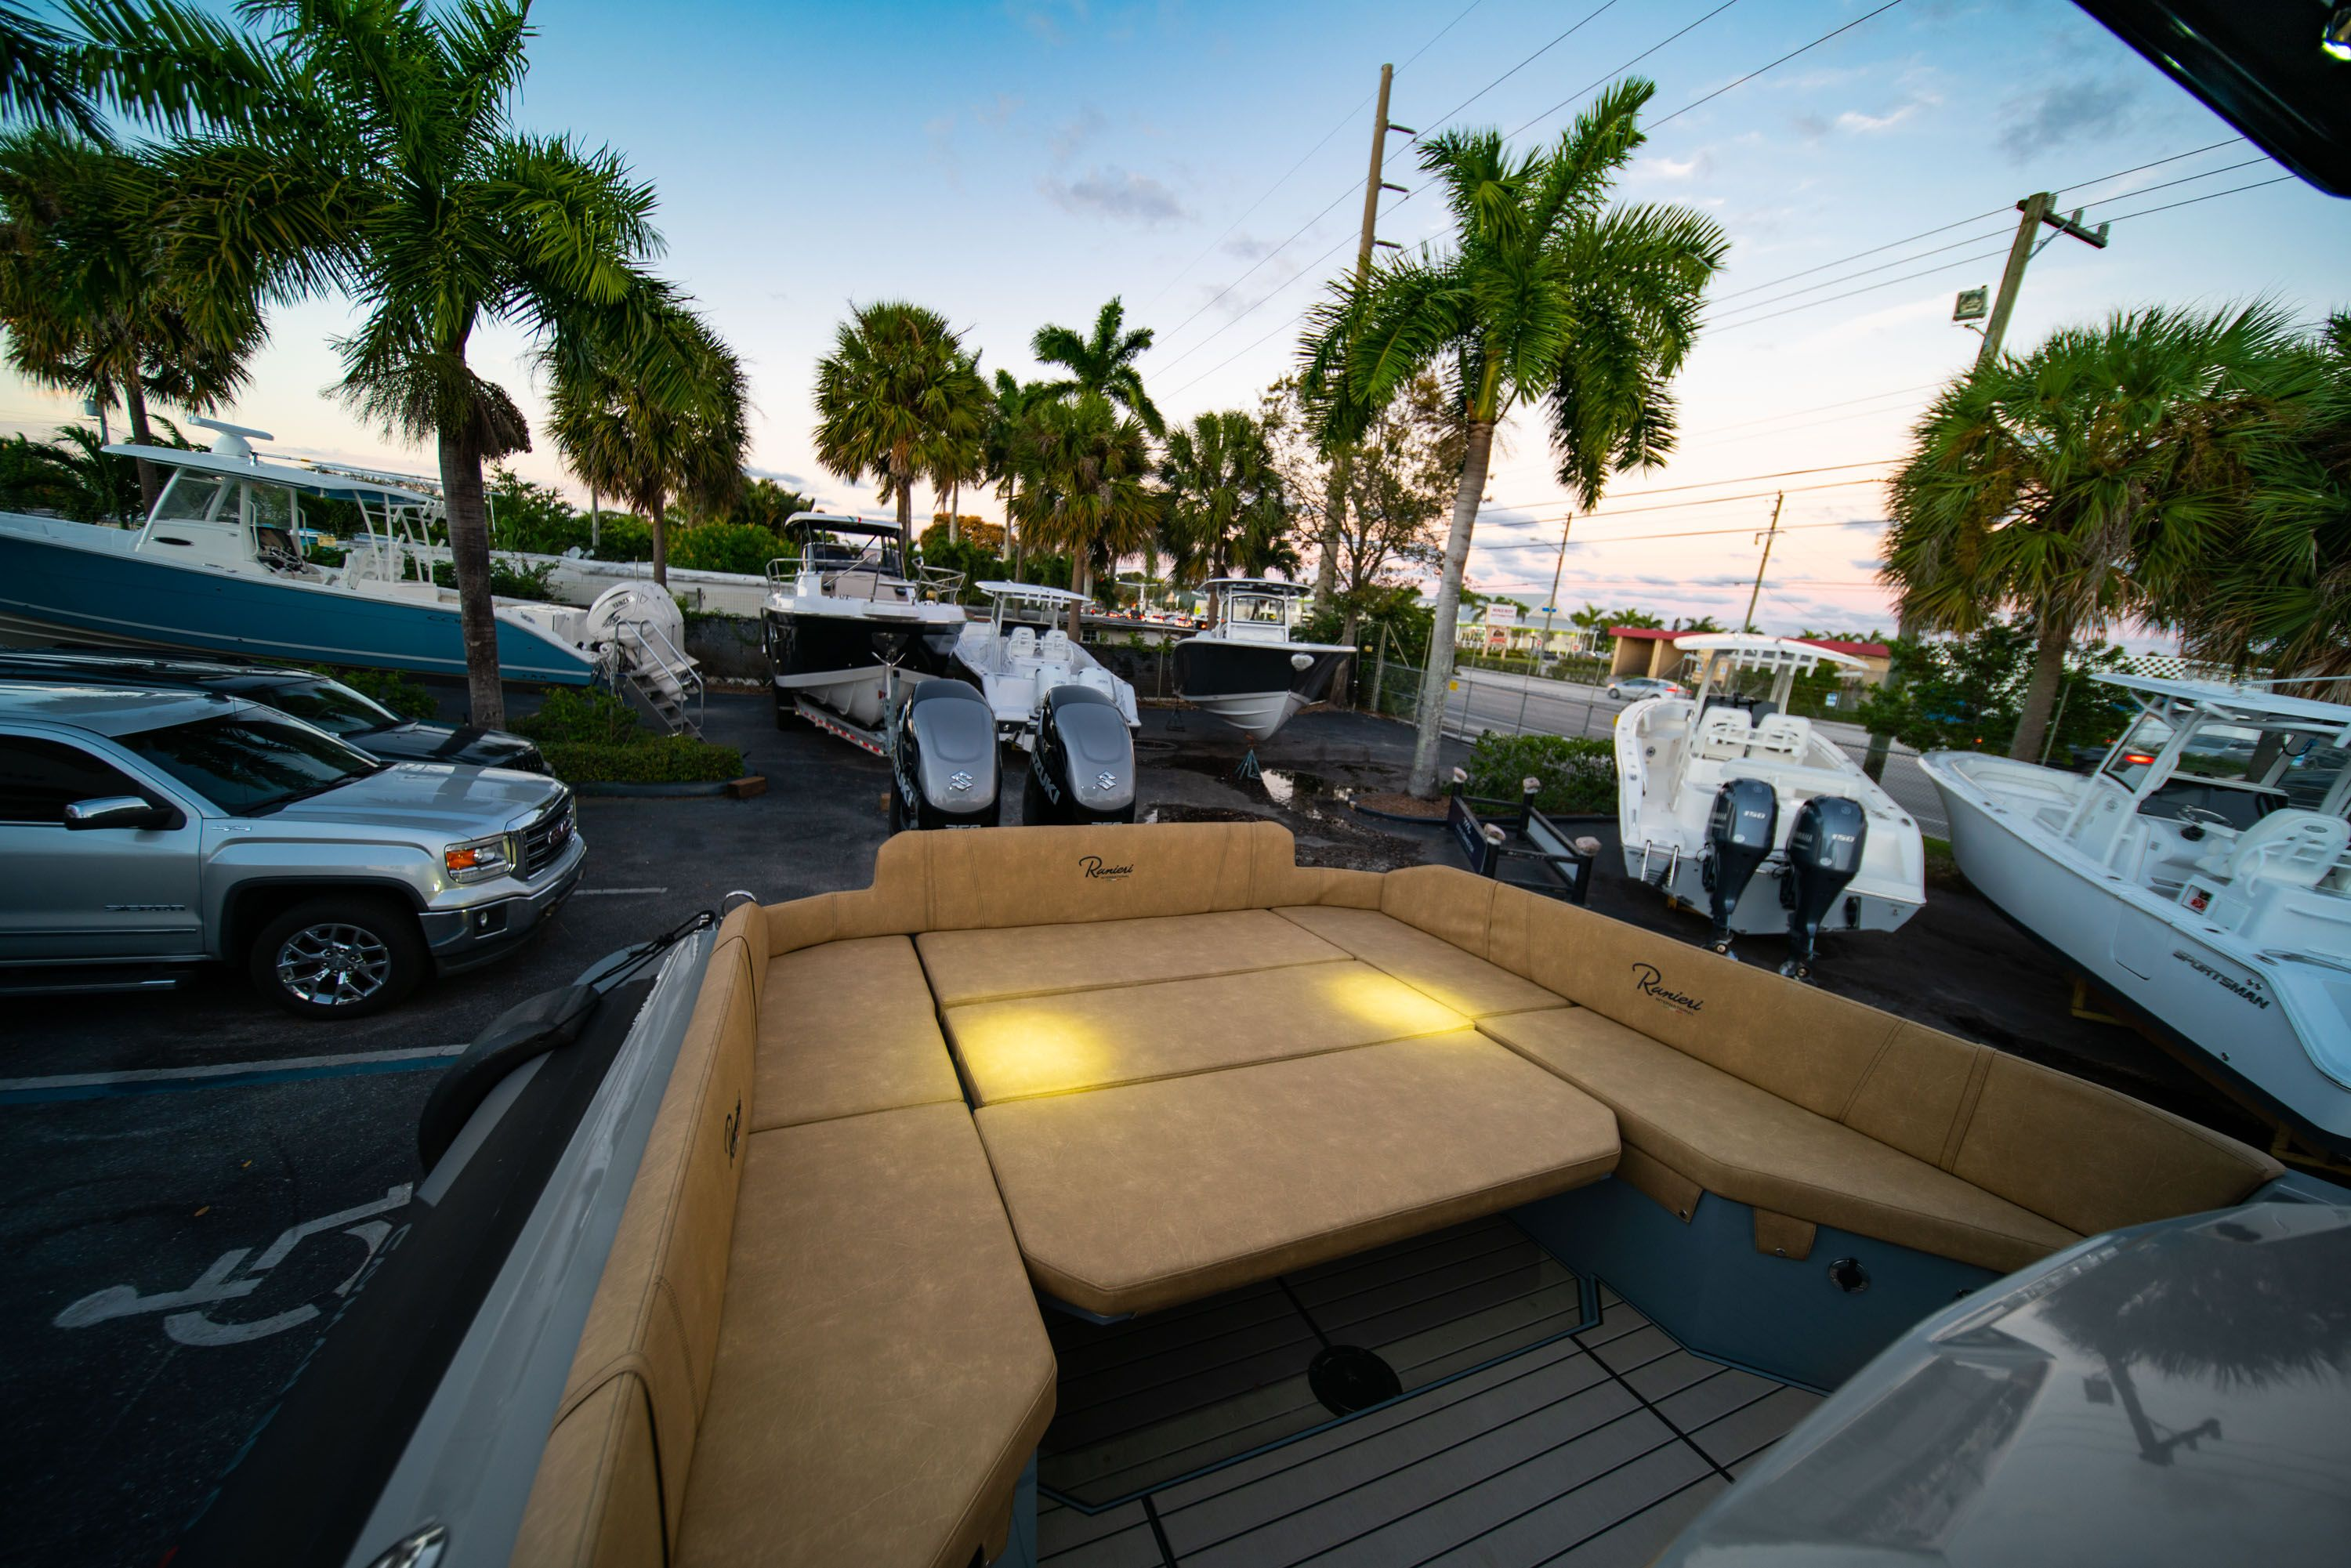 Thumbnail 19 for New 2019 Ranieri Cayman 38 Executive boat for sale in West Palm Beach, FL